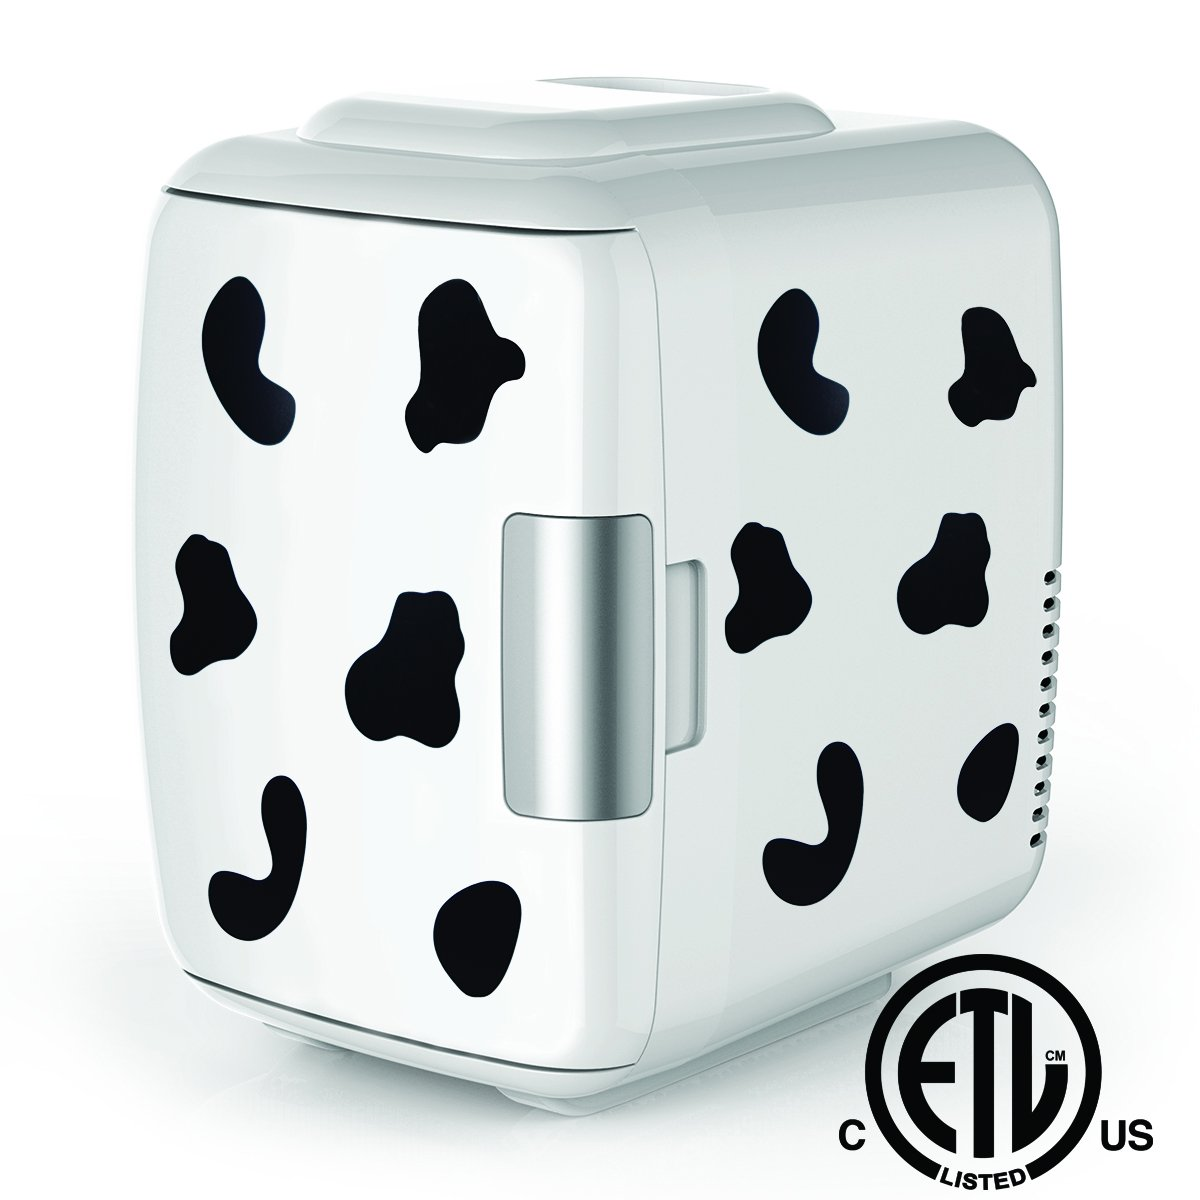 Cooluli Mini Fridge Electric Cooler and Warmer (4 Liter/6 Can): AC/DC Portable Thermoelectric System w/Exclusive On the Go USB Power Bank Option (Cow)